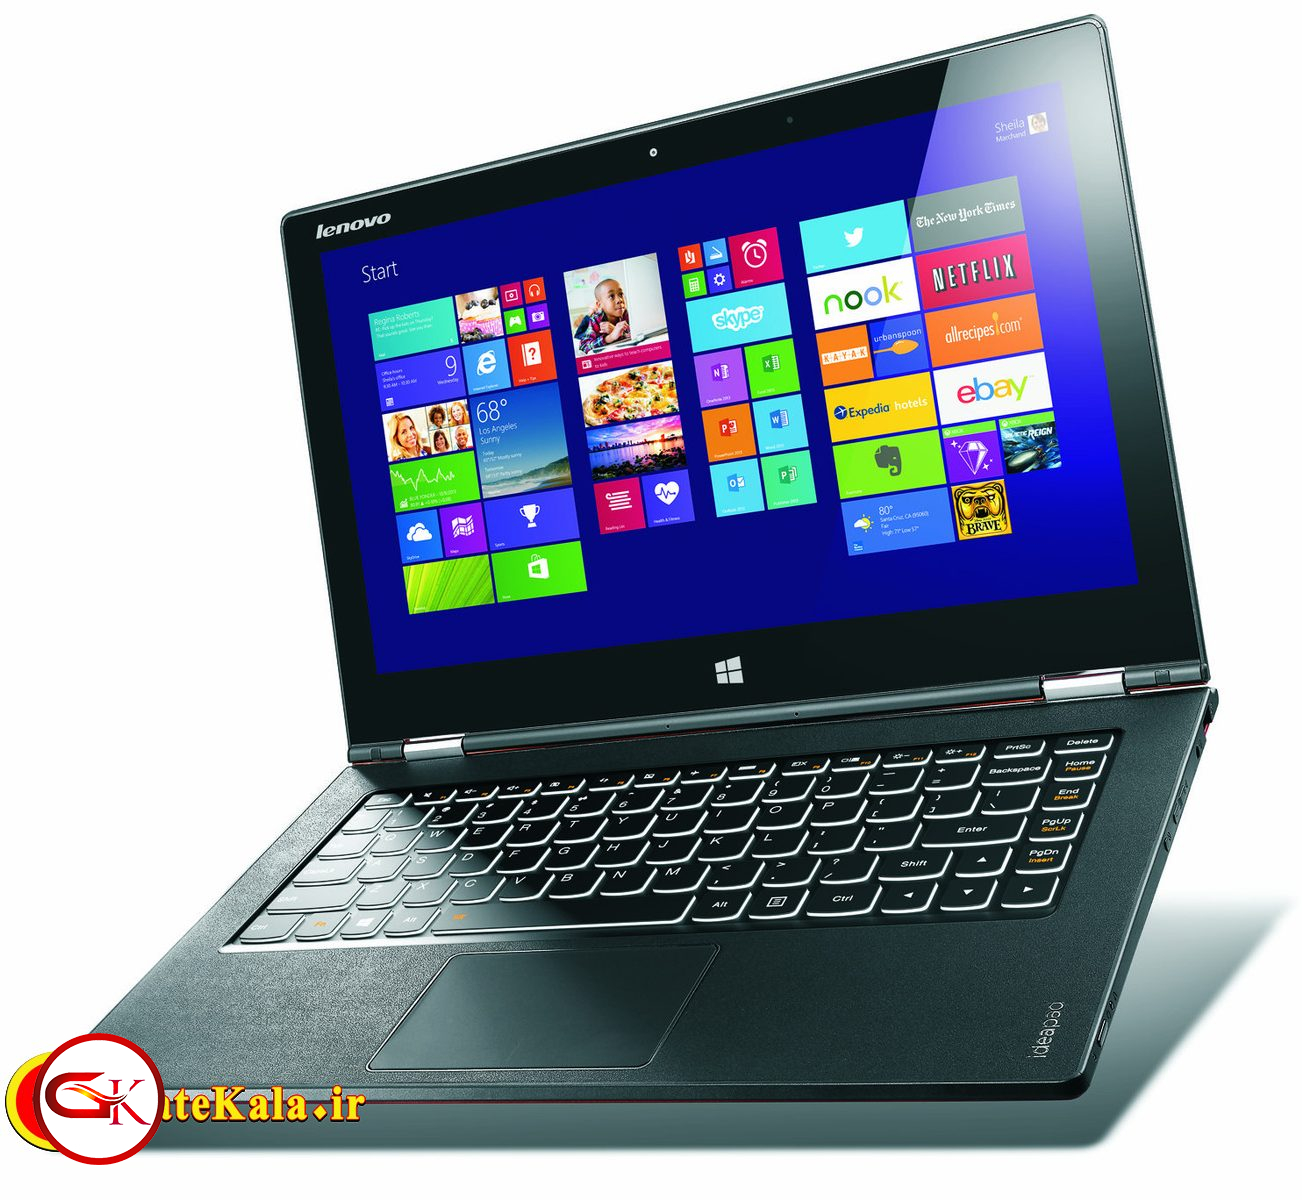 Lenovo Yoga 2 13 | Core i5 4200U | RAM 4G | 500G HDD | Intel HD Graphic